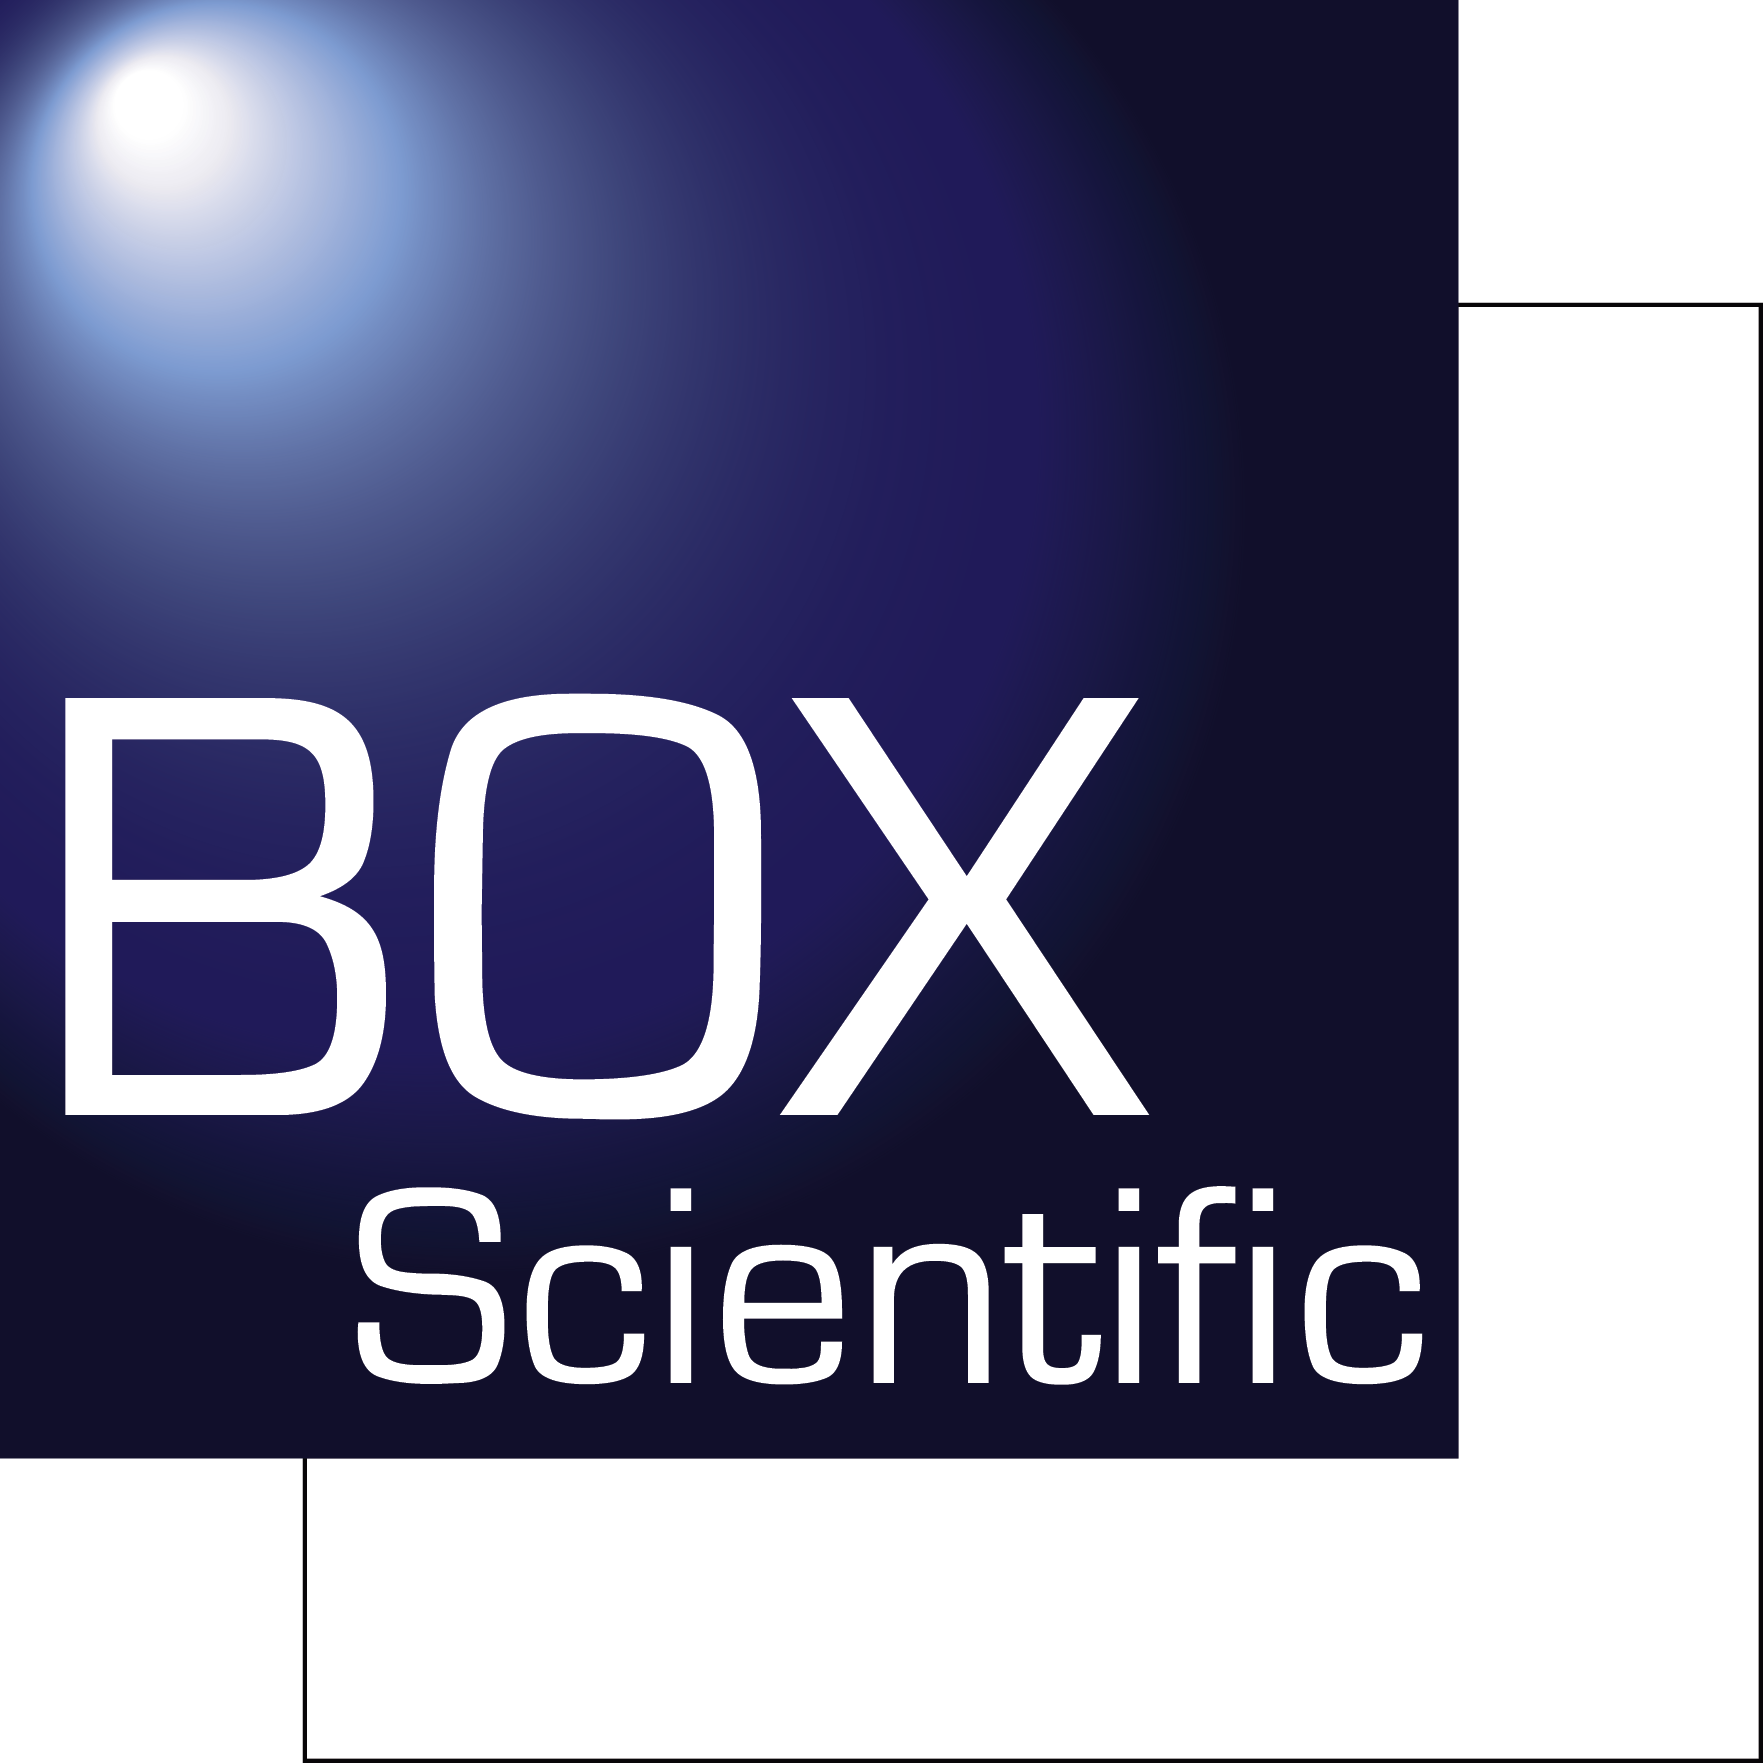 Box Scientific